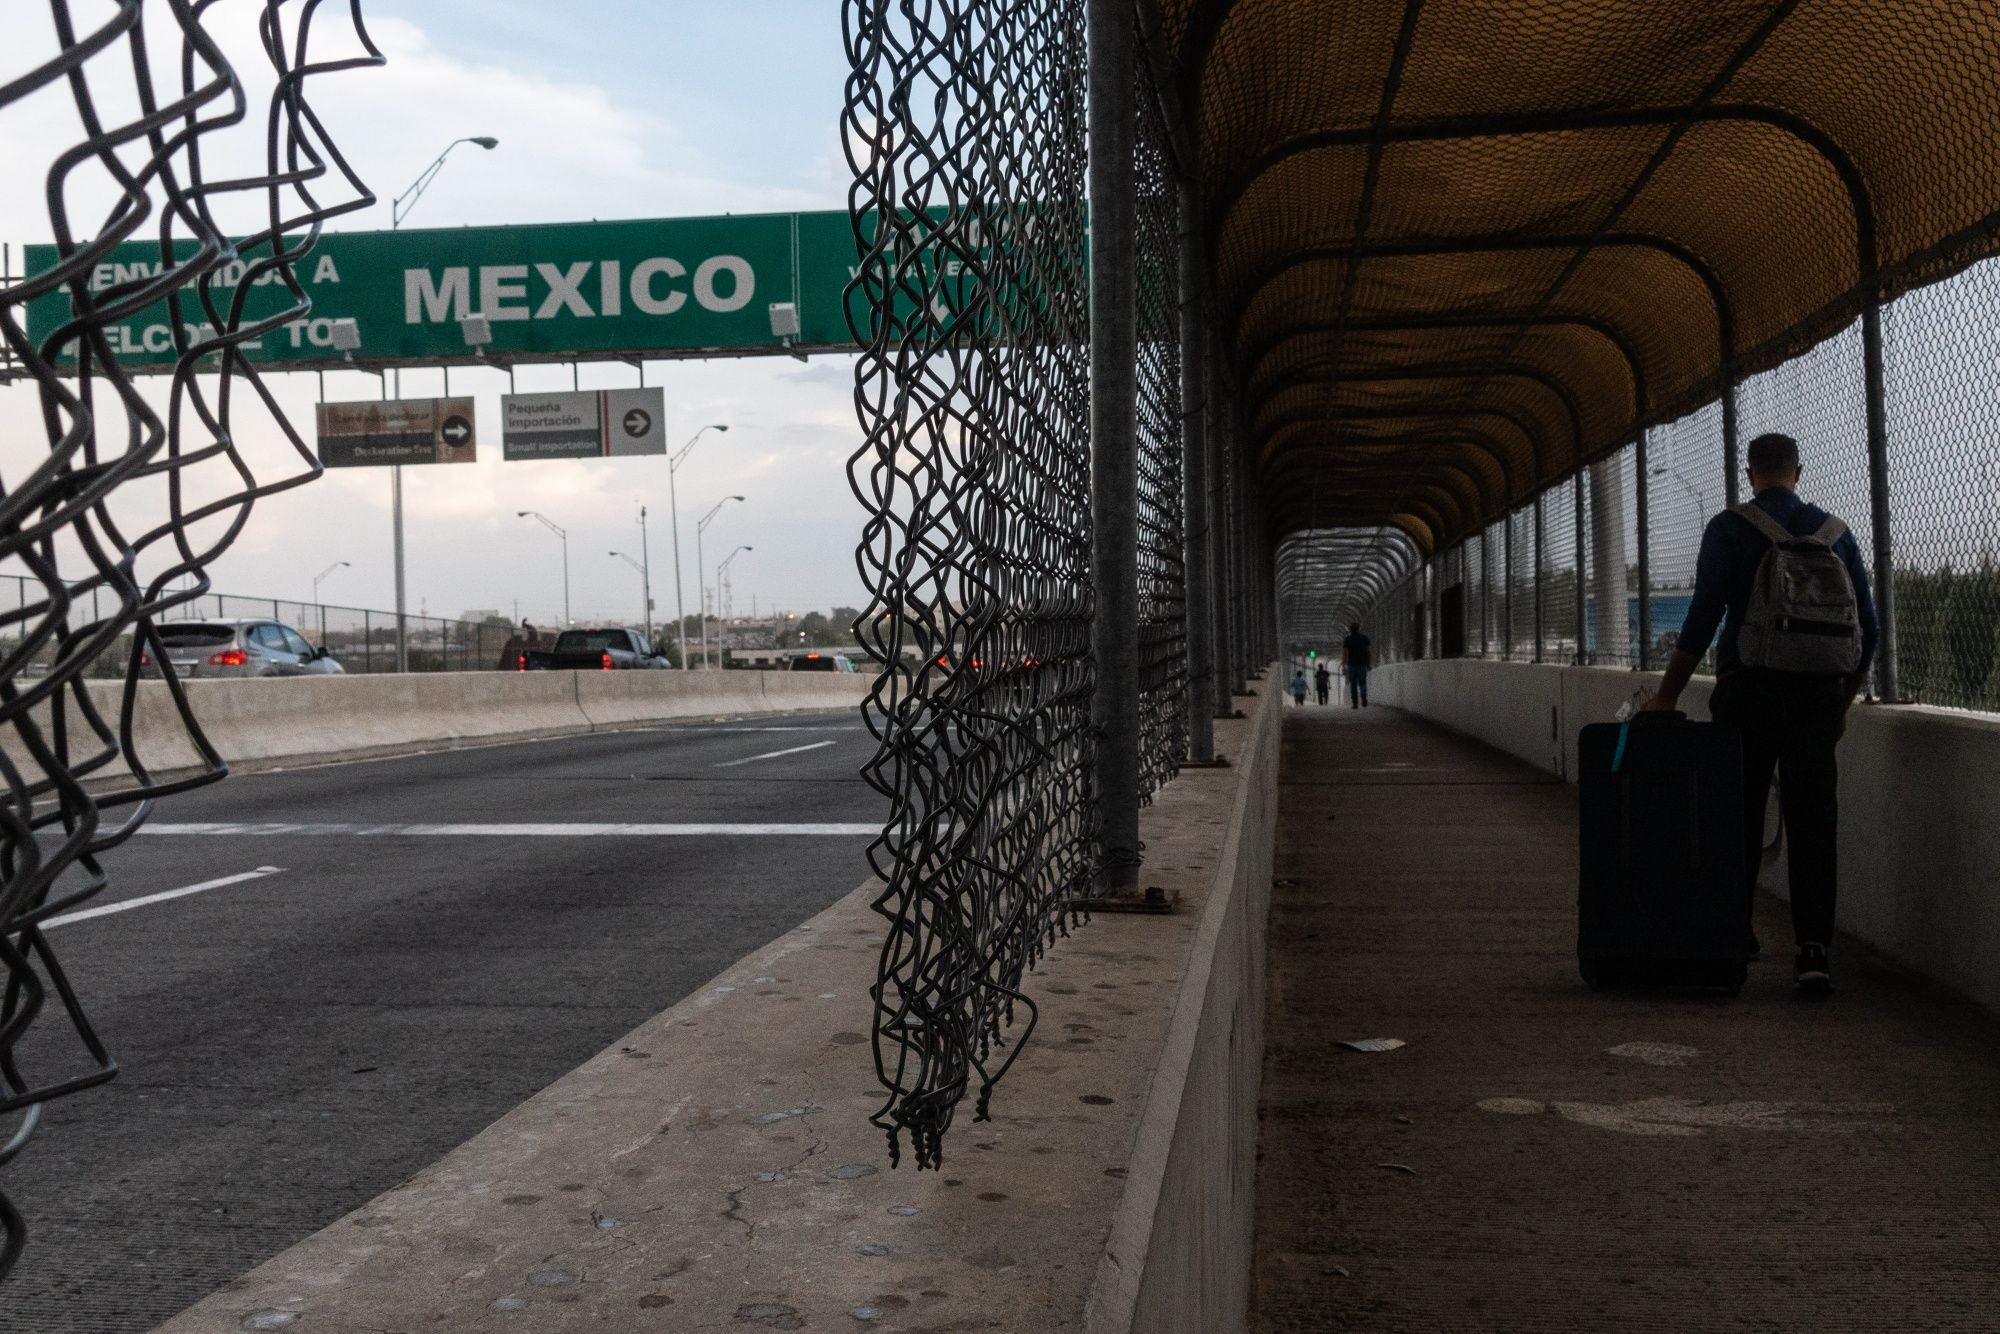 A pedestrian pulls a suitcase while walking along the Puente Internacional Cordova de las Americas (Puente Libre) bridge towards Ciudad Juarez, Chihuahua state, Mexico from El Paso, Texas, U.S., on Tuesday, Aug. 27, 2019. Poverty and violence—and the pull of the world's richest economy—are driving people north. At the border, they're met by a new regime of tightened security and laws, imposed by Trump in tandem with his Mexican counterpart, Andres Manuel Lopez Obrador, also known as AMLO. Photographer: Cesar Rodriguez/Bloomberg